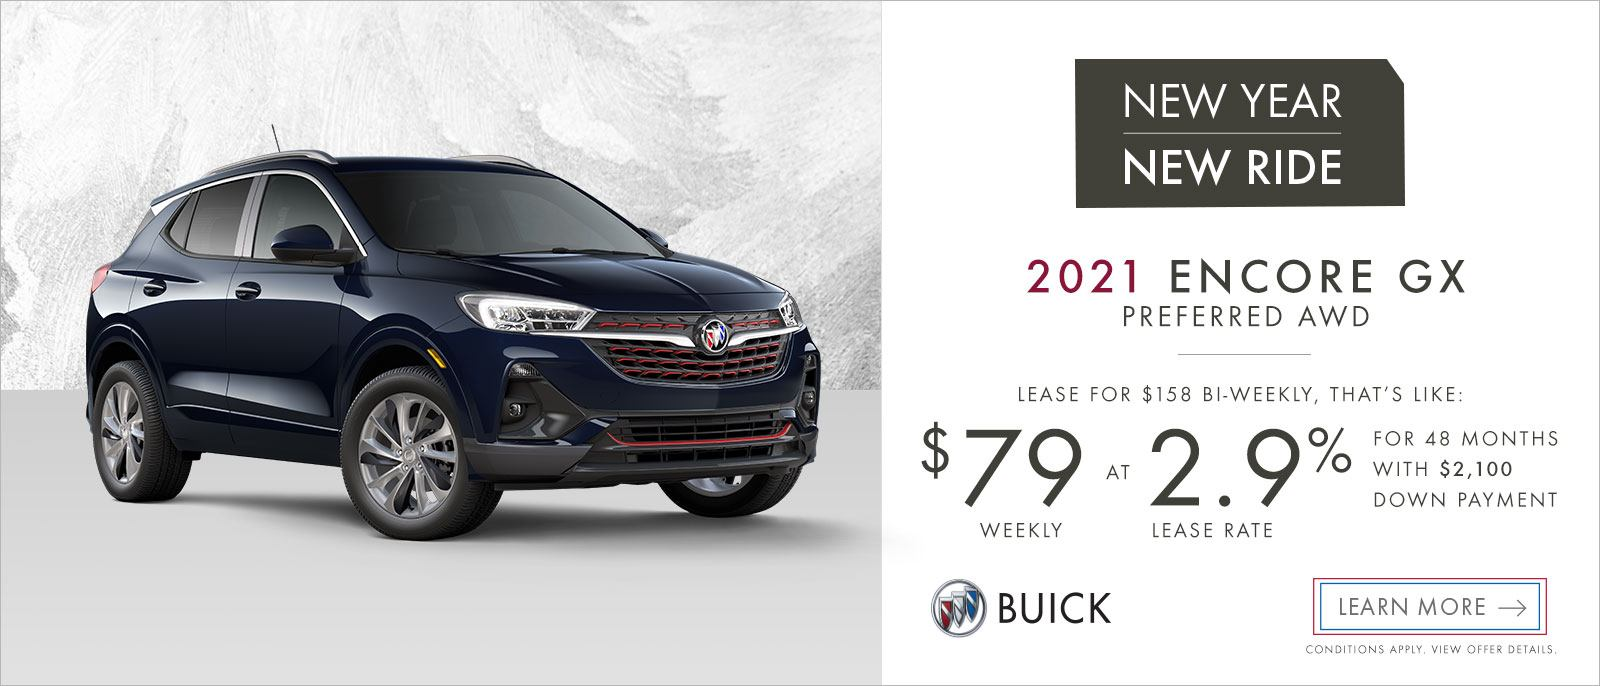 New Year New Ride 2021 Buick Encore GX